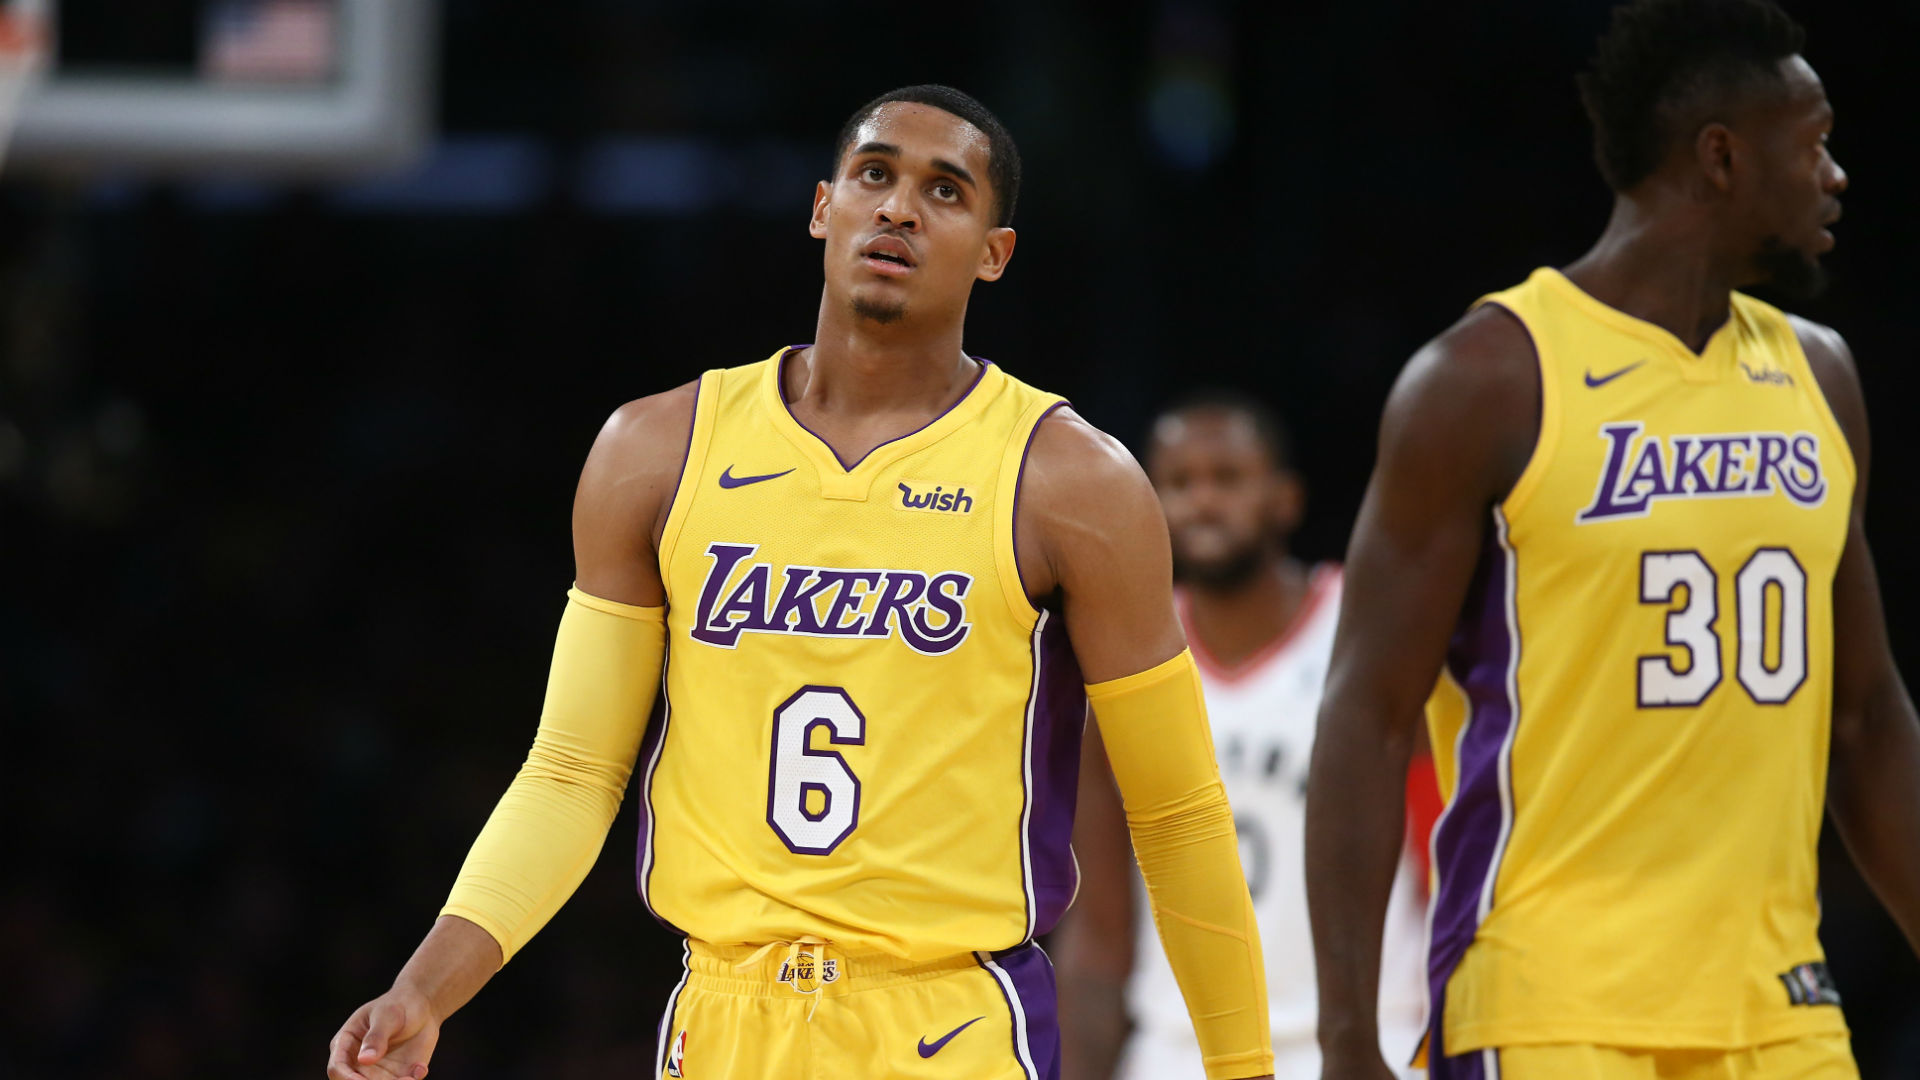 Wolves romp over Lakers again, 114-96